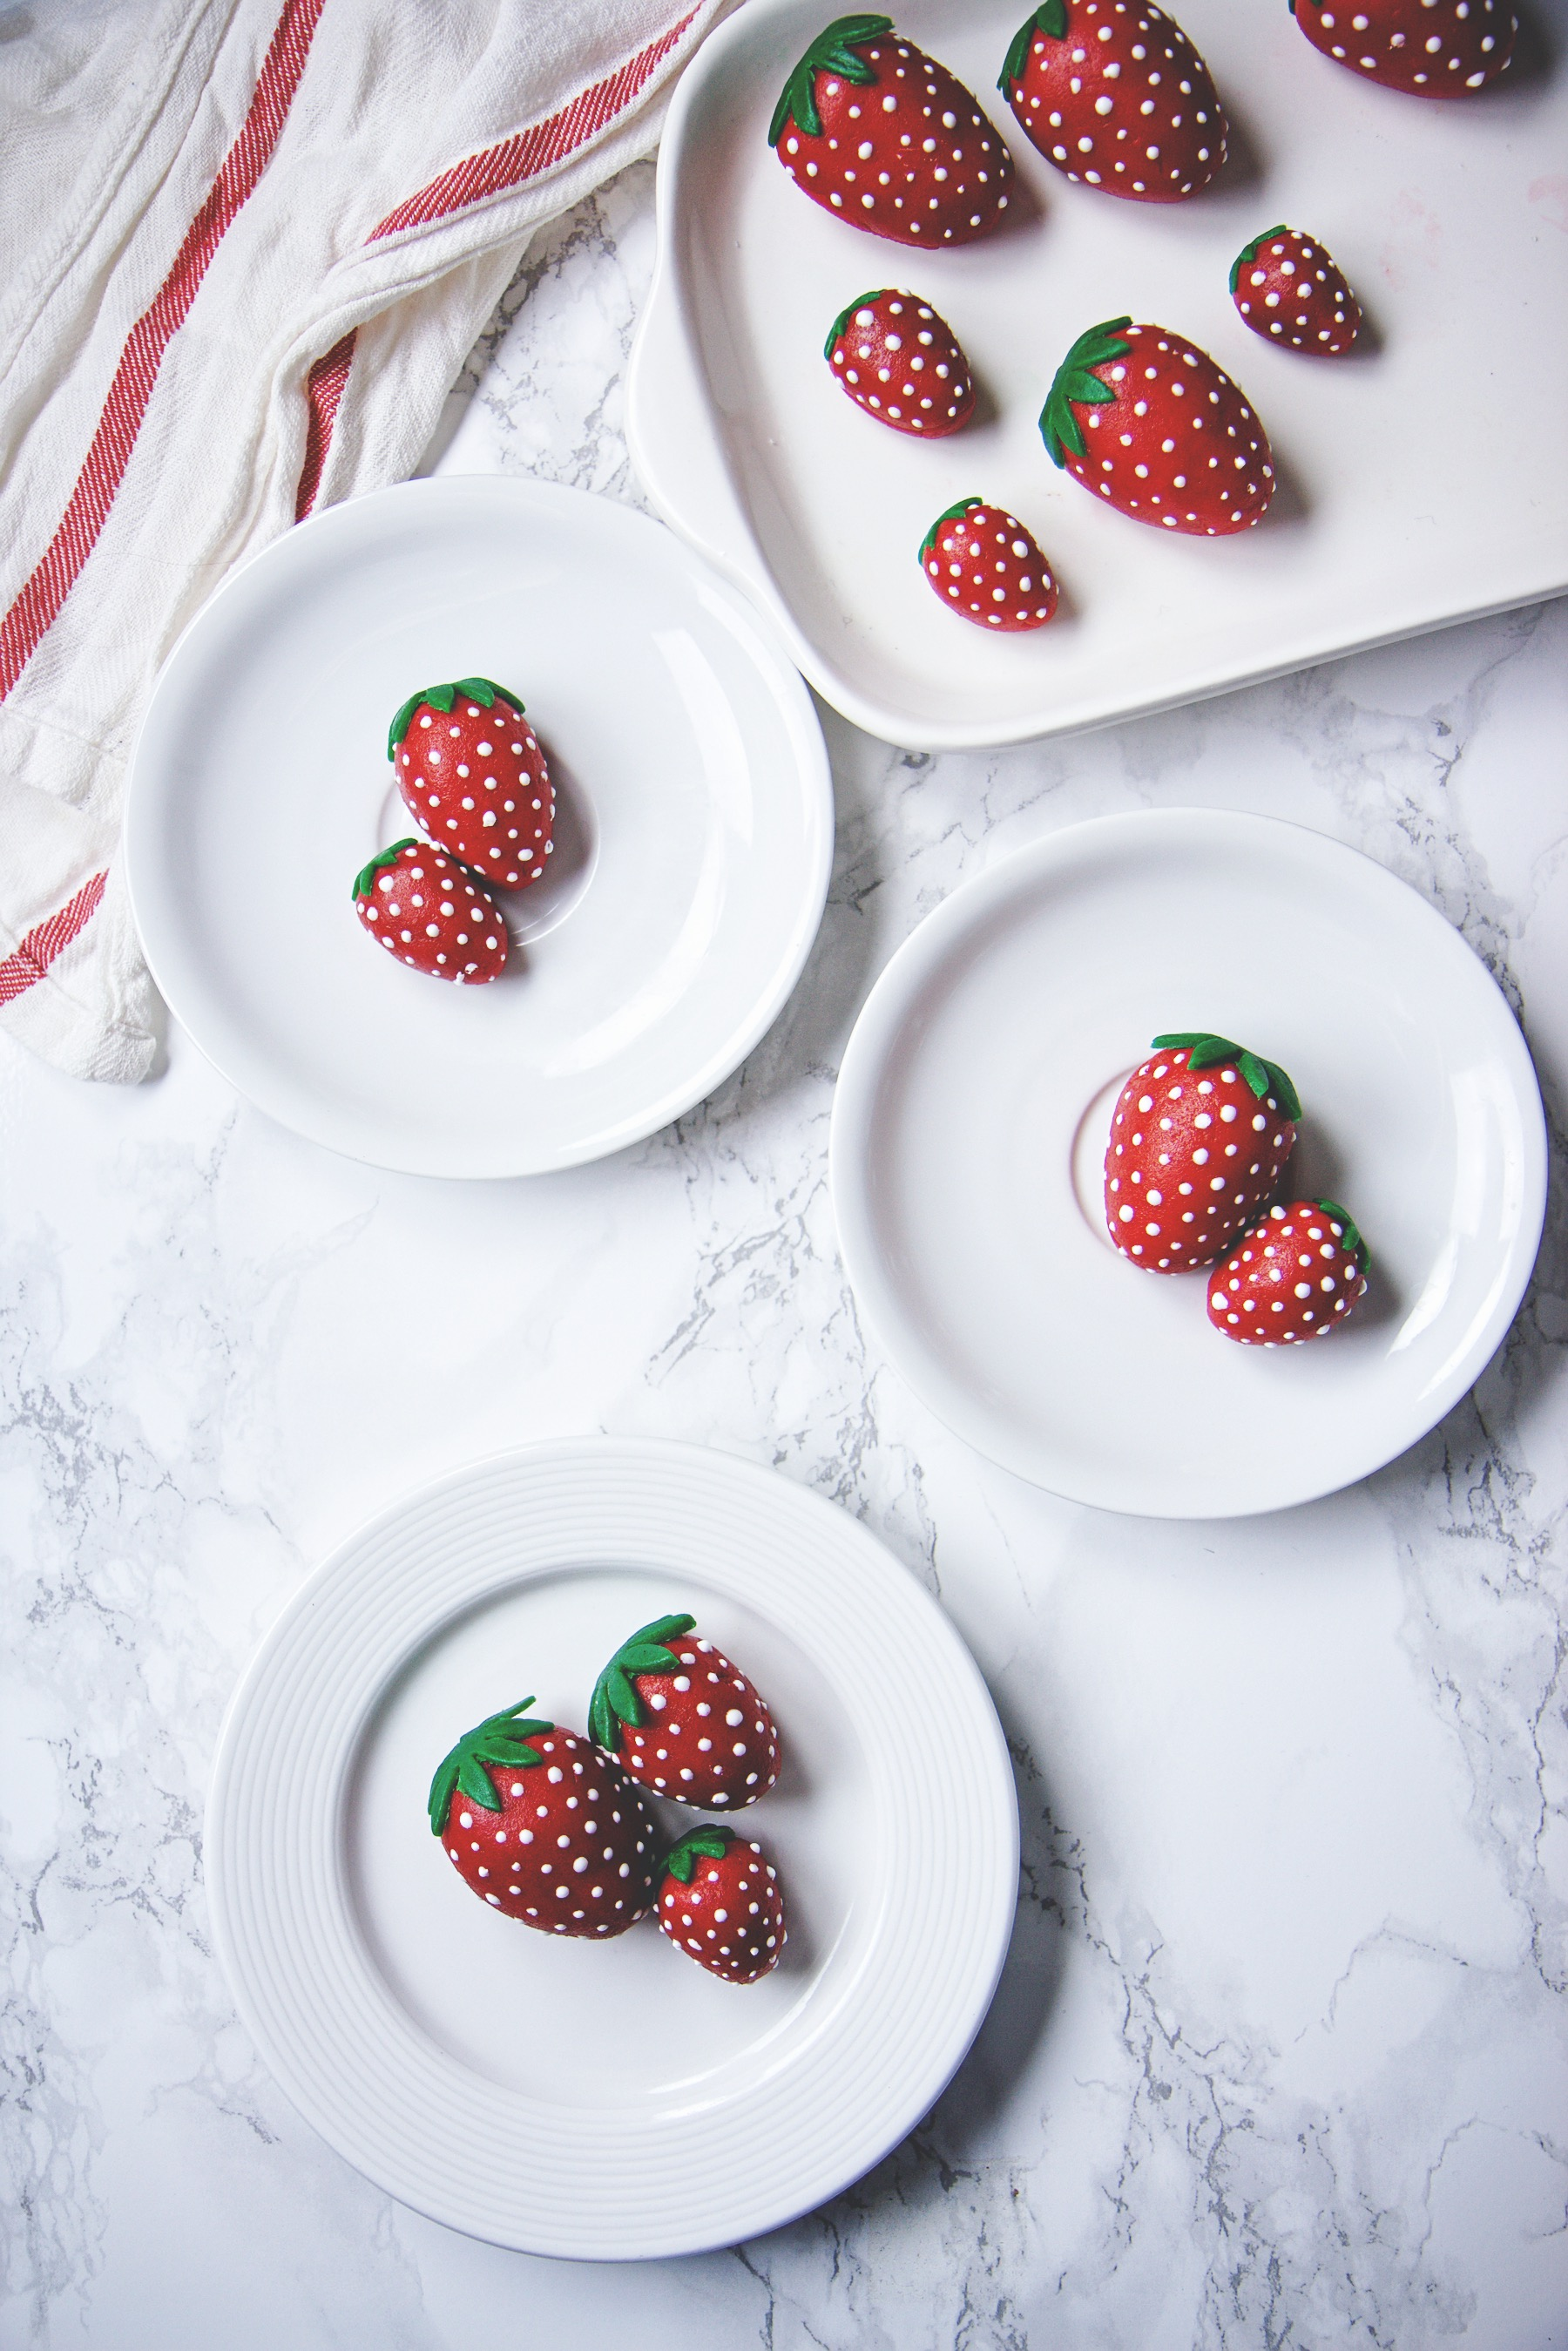 Strawberry, Chocolate, and Marzipan Cakes | La Pêche Fraîche